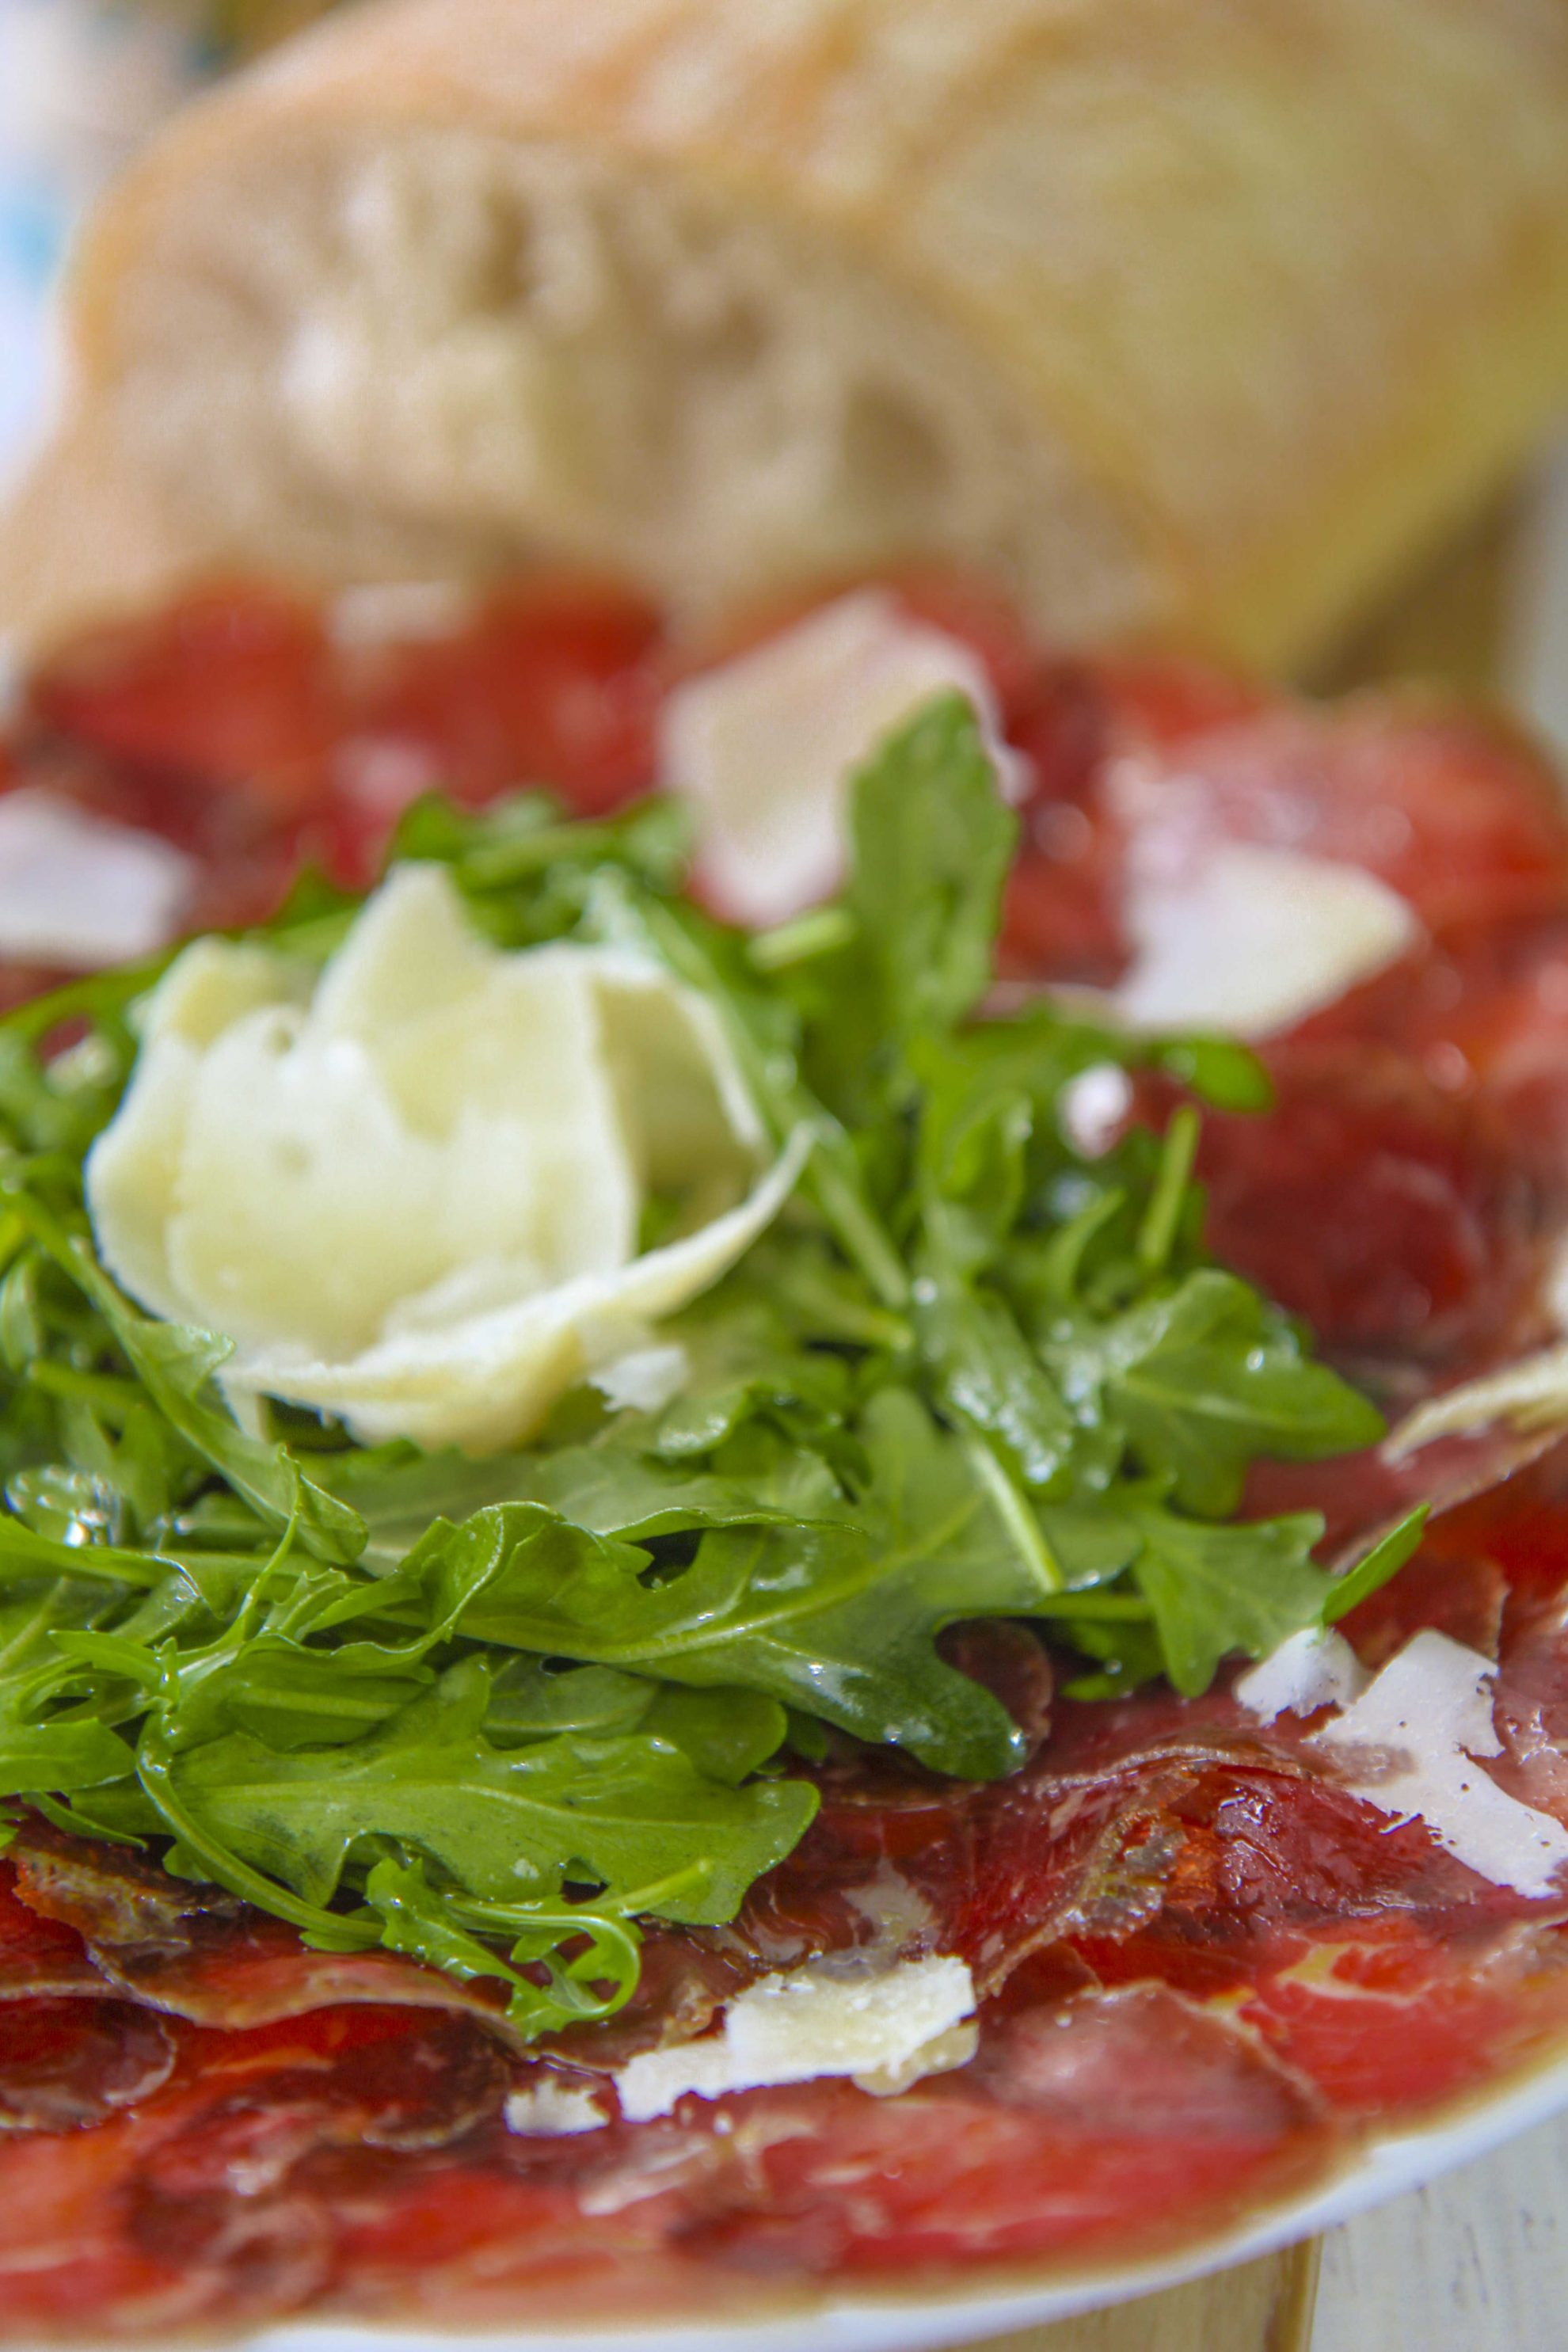 ITALIAN BRESAOLA SALAD with arugula and cheese